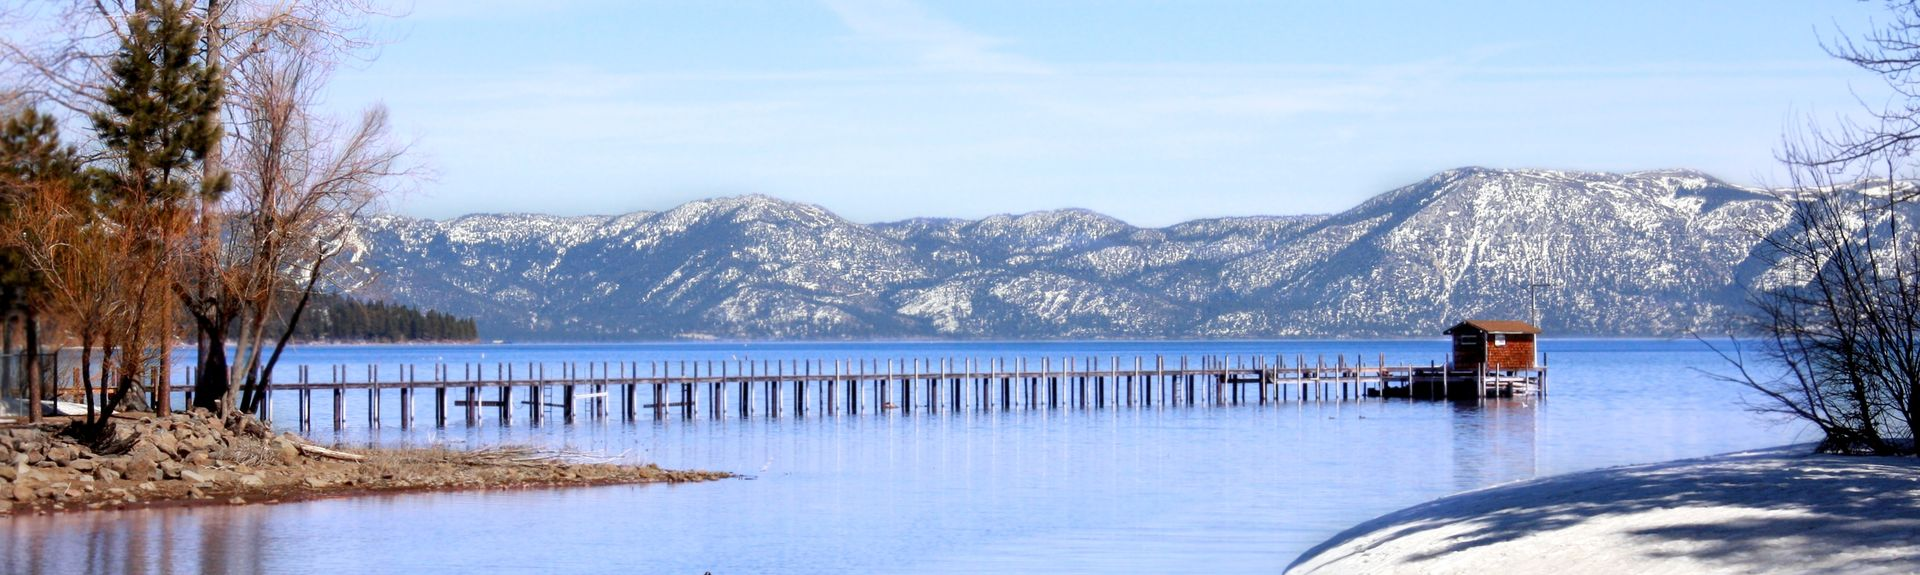 Tahoe City, Califórnia, Estados Unidos